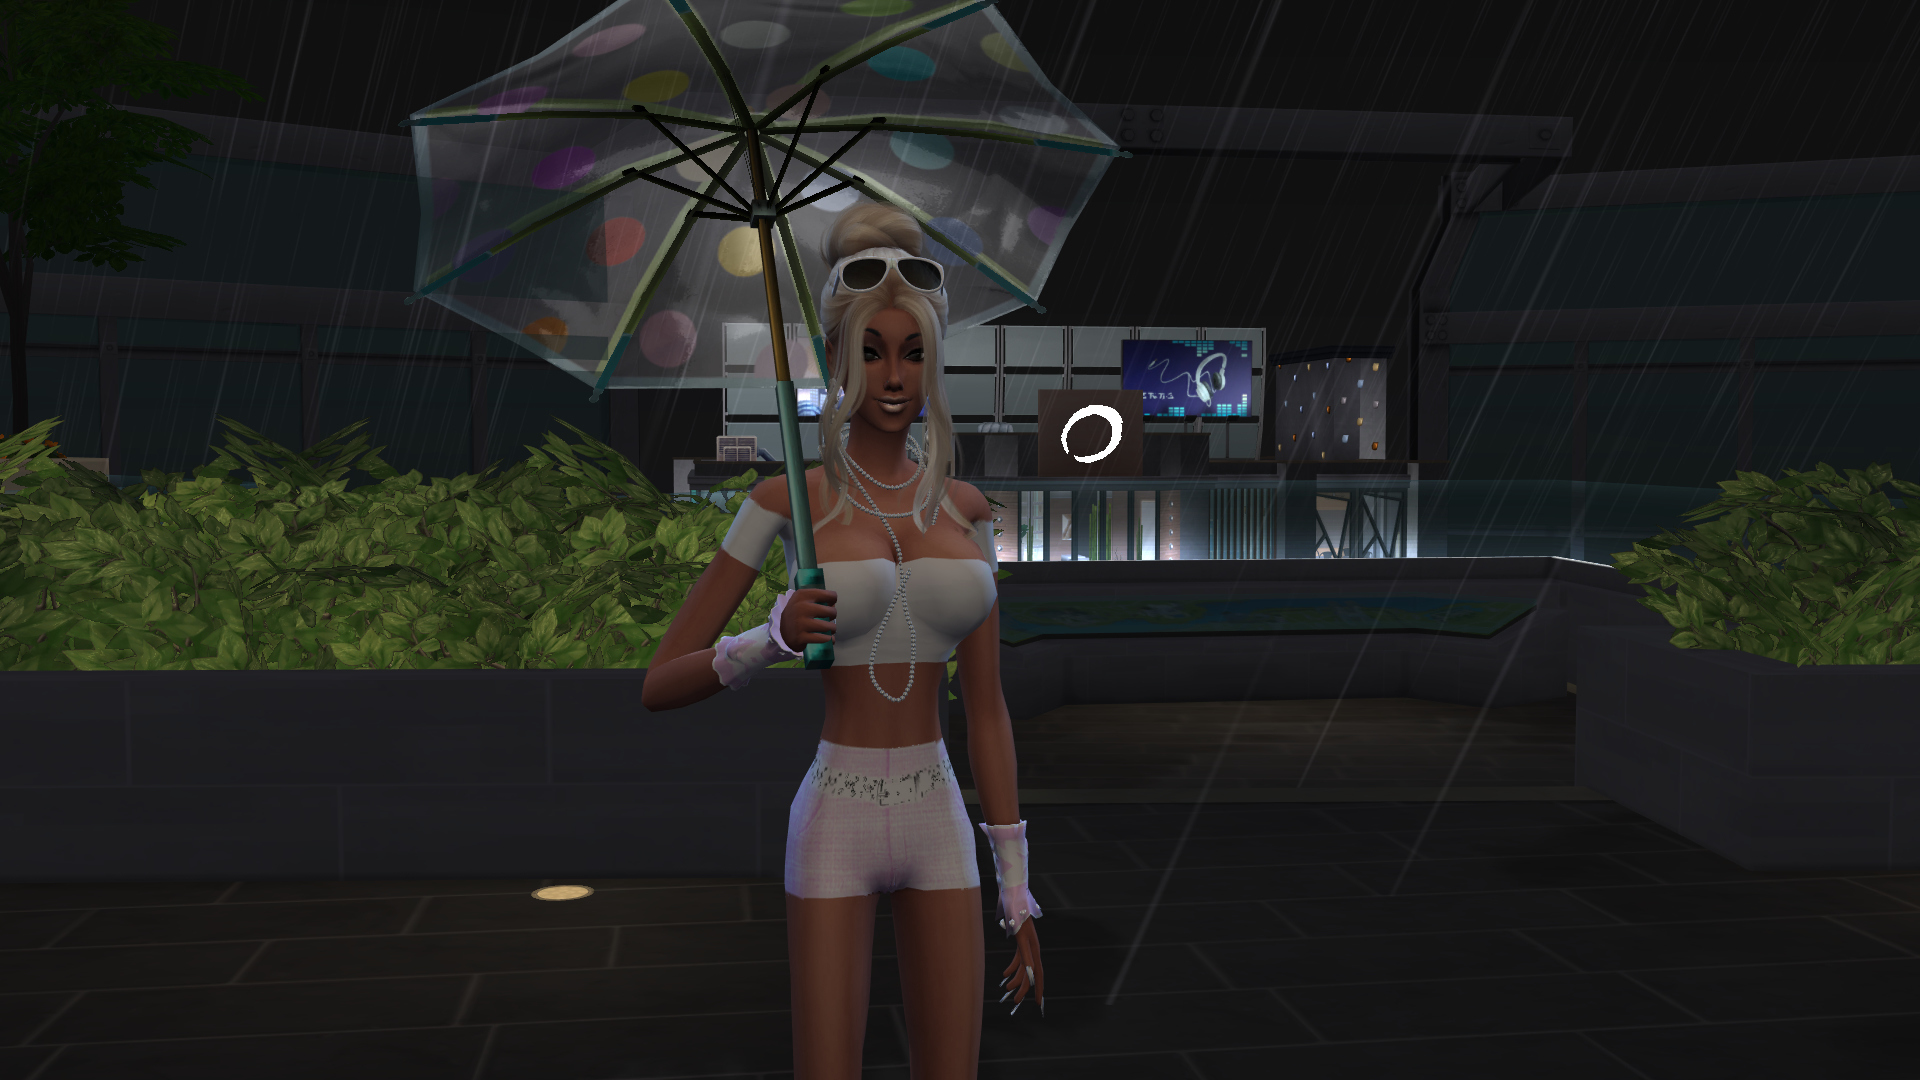 Mod The Sims - No Rain Outfits